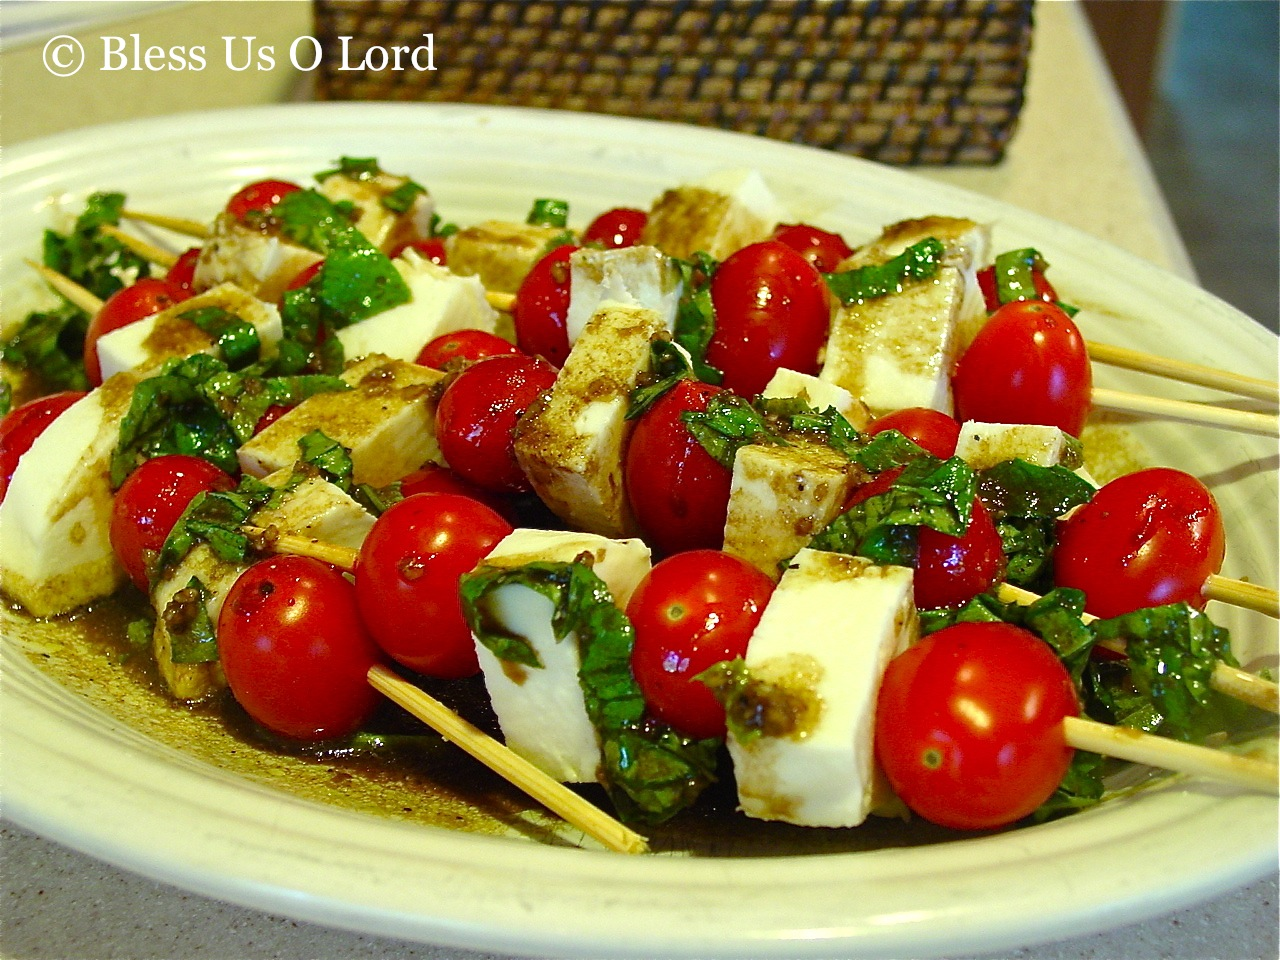 Bless Us O Lord...: Caprese Salad Skewers